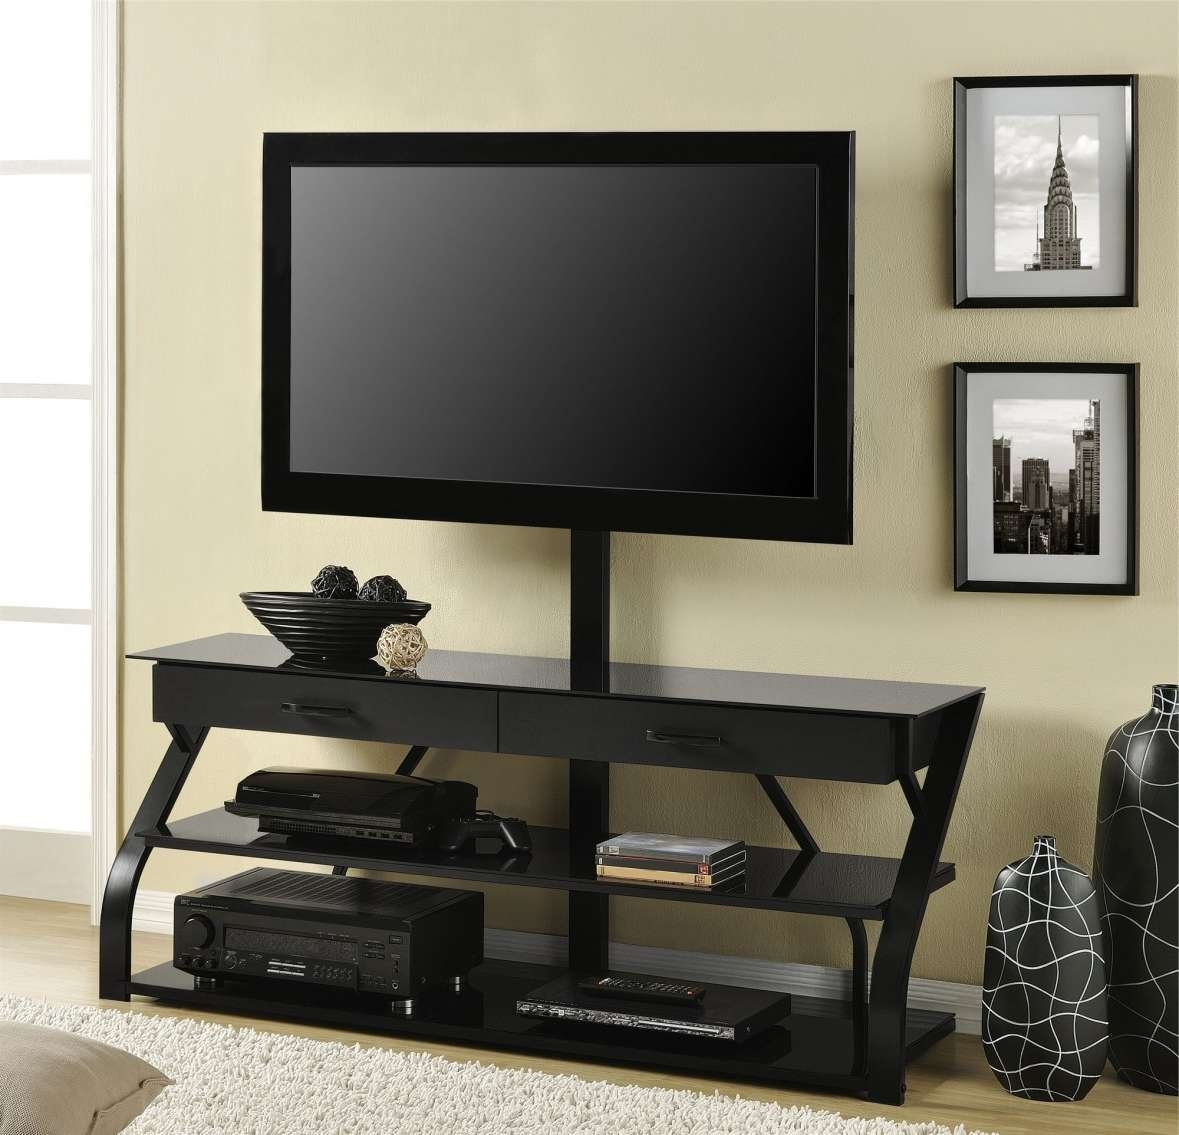 Furniture Uncategorized Beautiful Furniture Tv Stands For Plasma With Tv Stands For Plasma Tv (View 5 of 15)